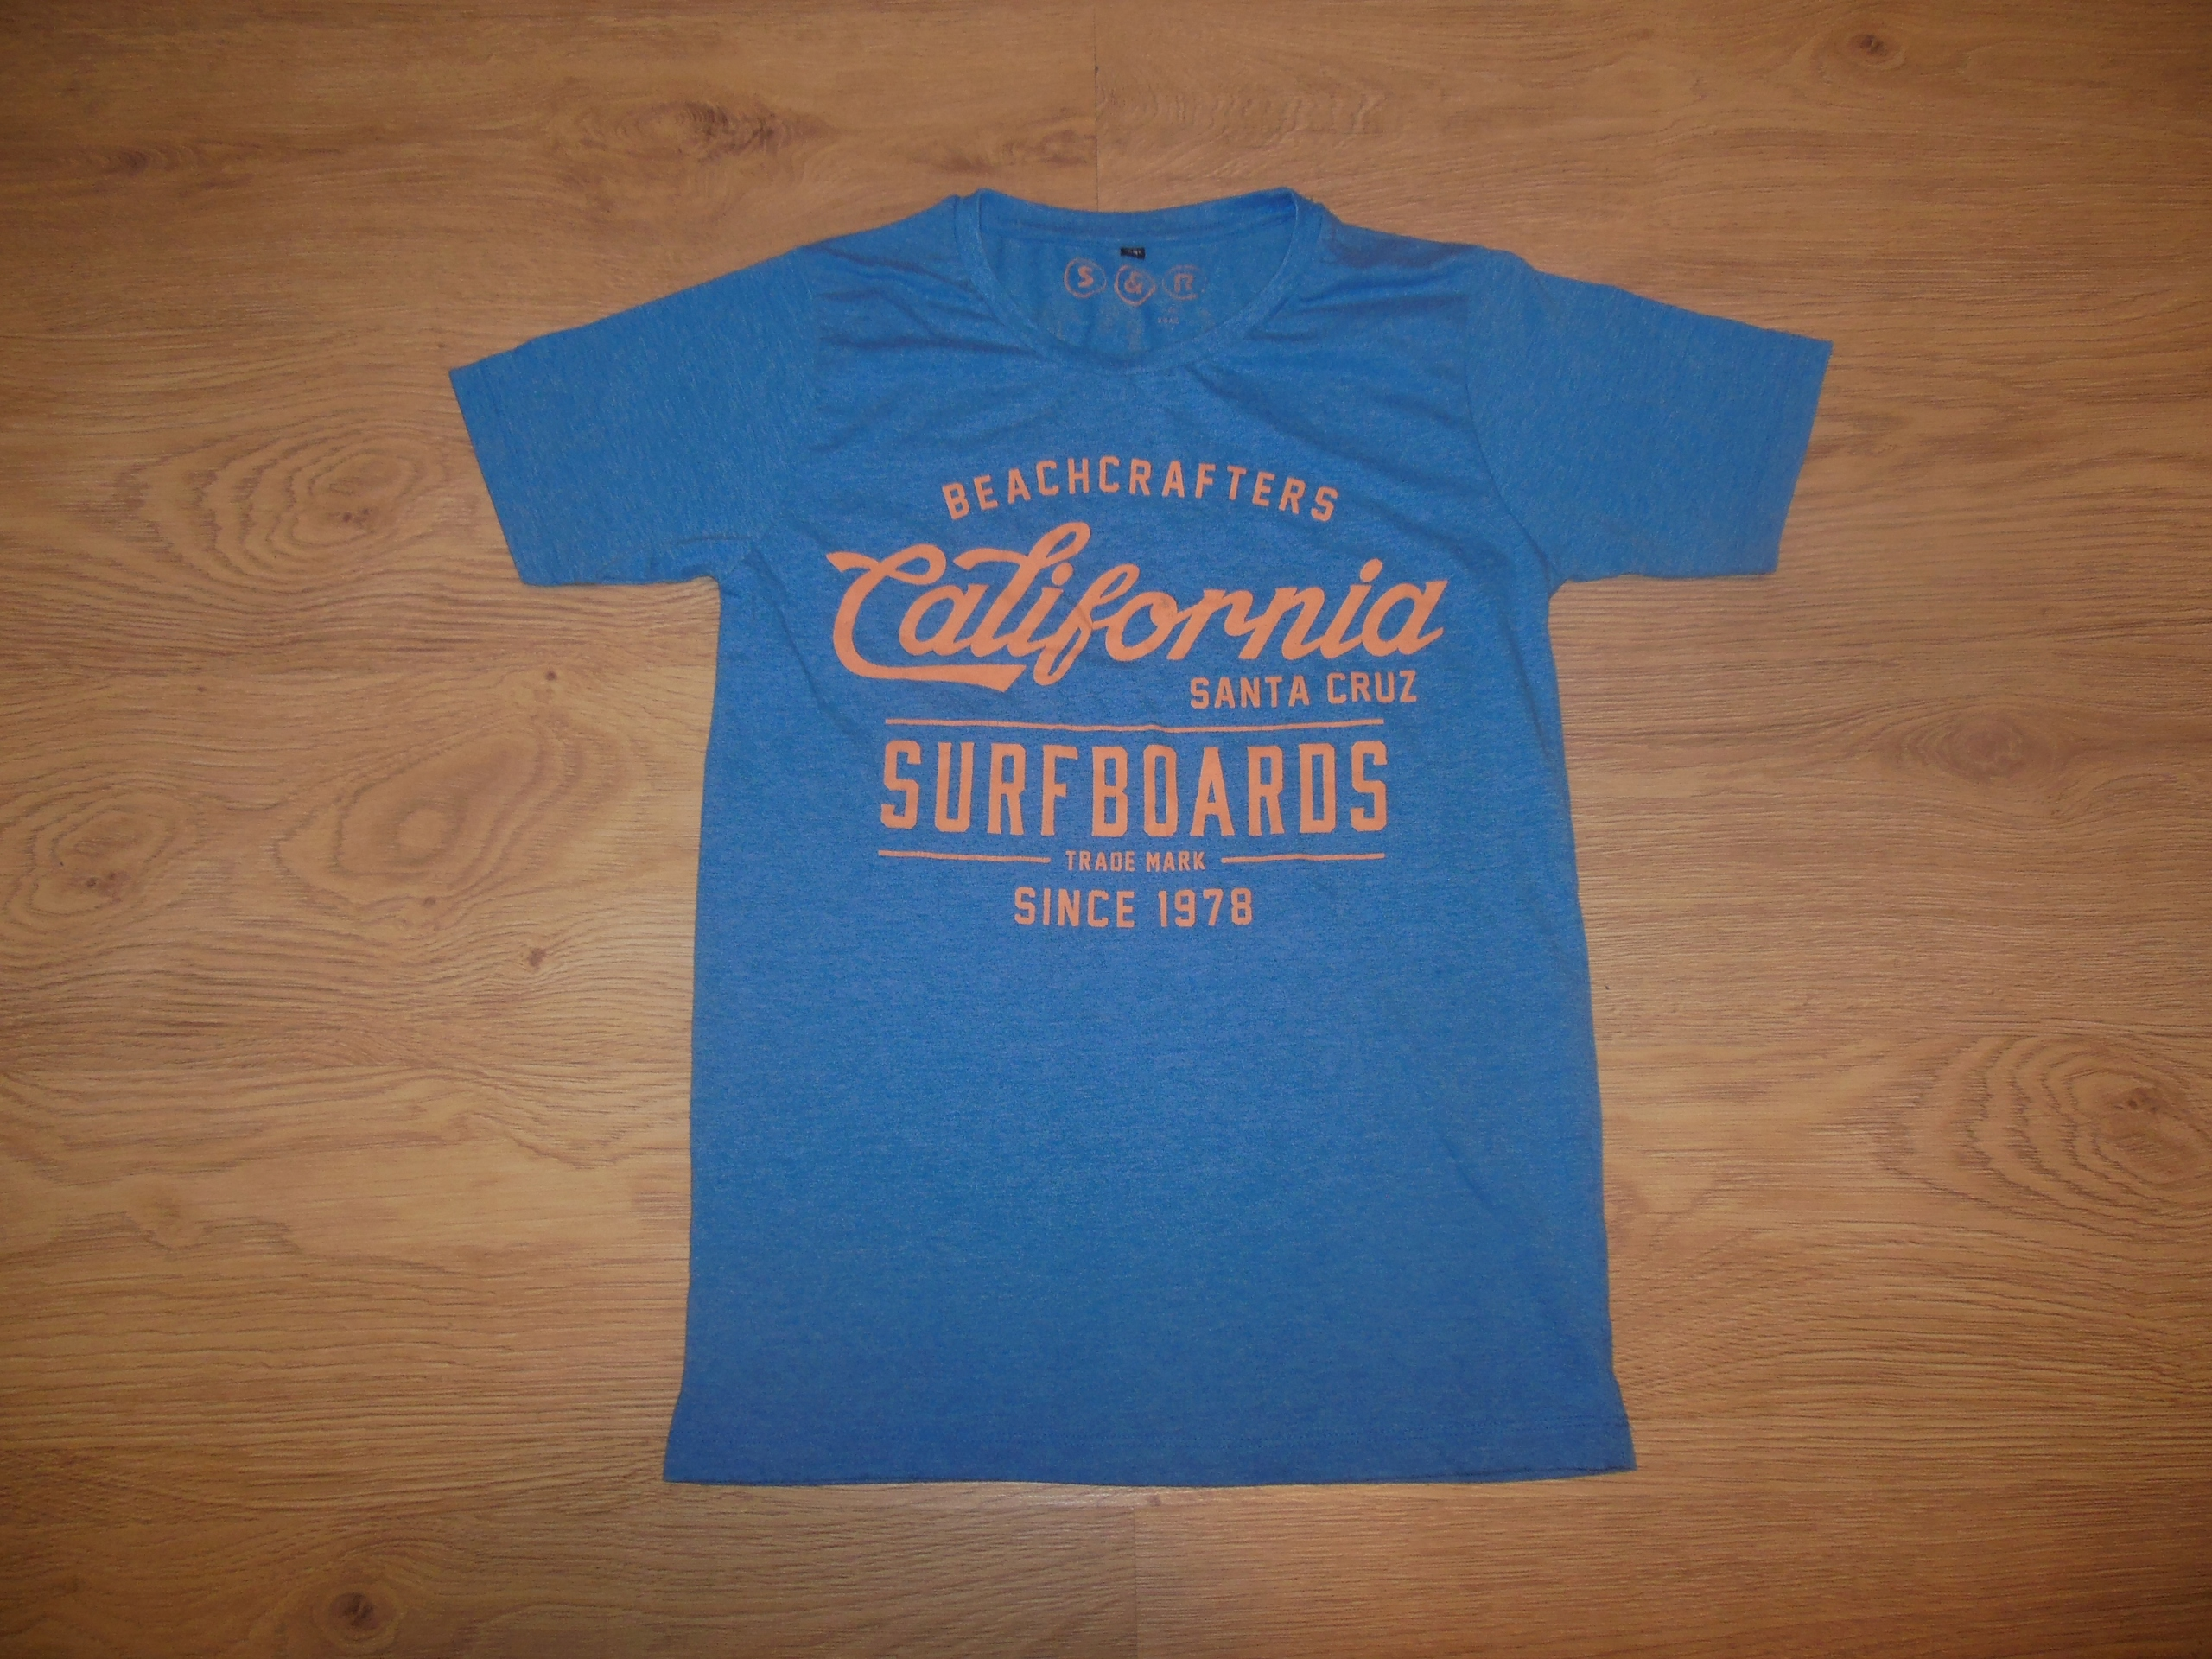 CALIFORNIA SANTA CRUZ S billabong mass ecko USA